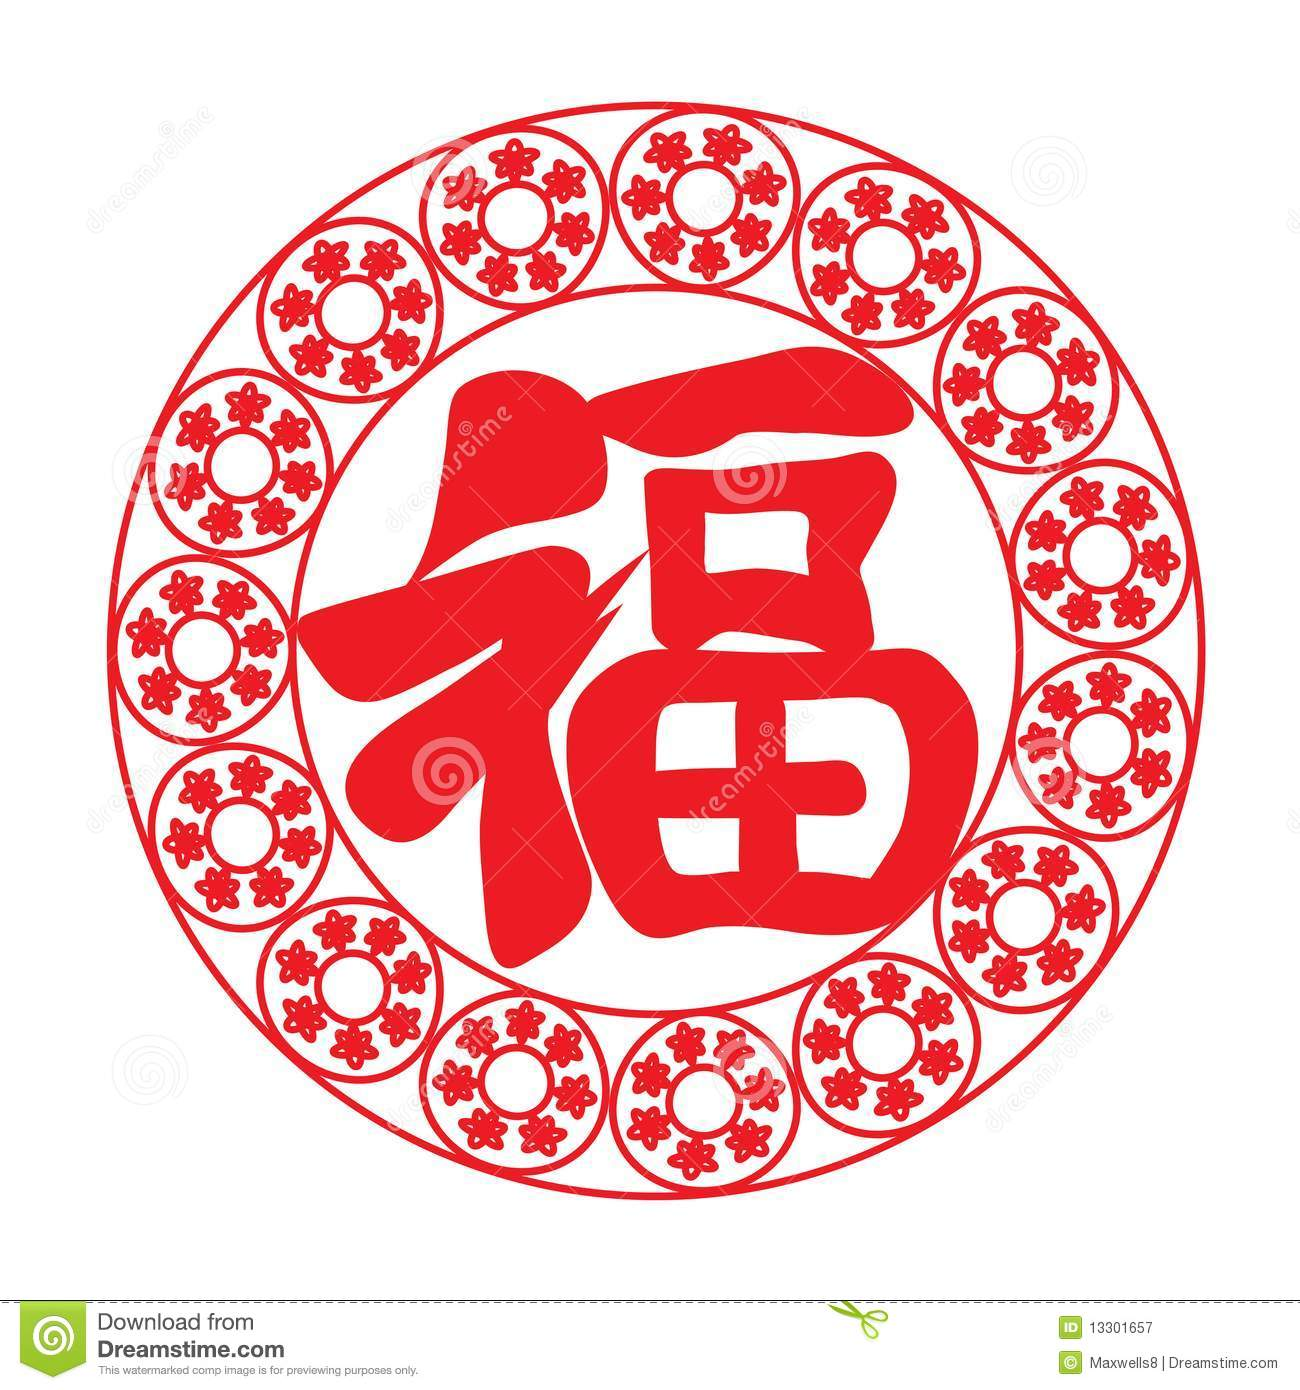 Chinese Paper Cut Royalty Free Stock Photography - Image: 13301657